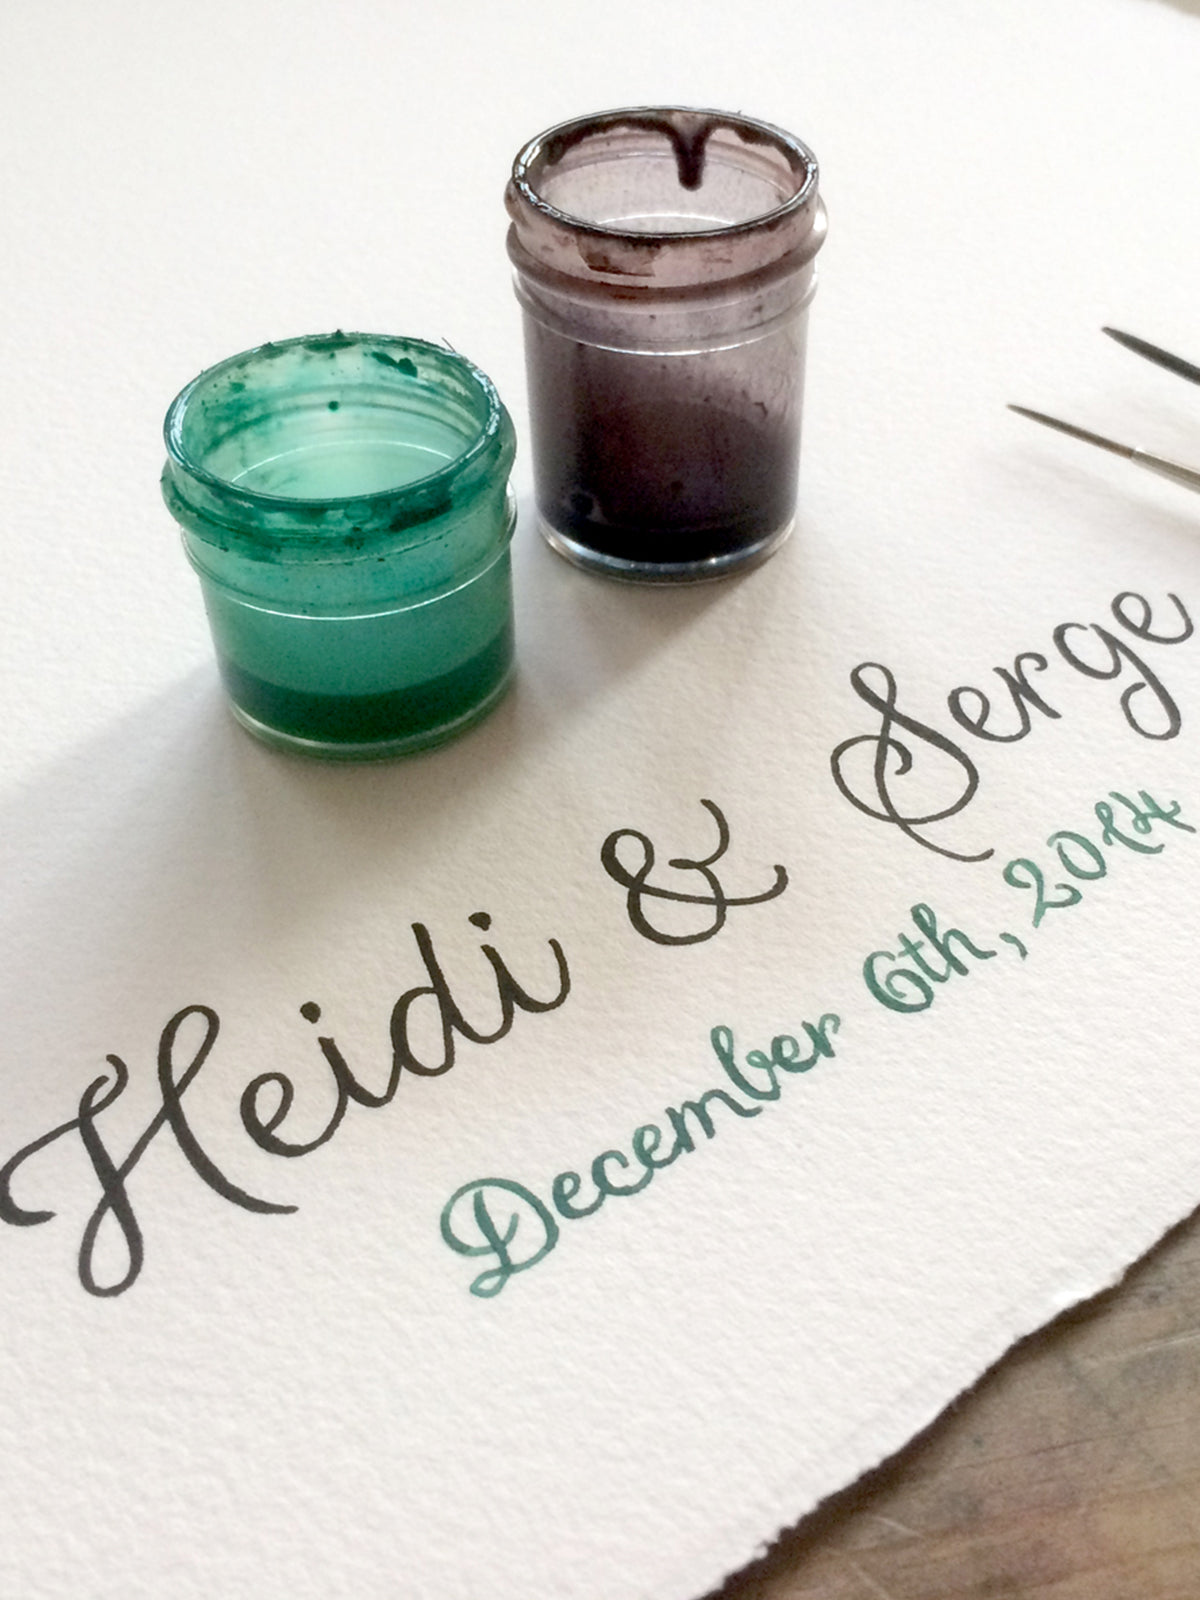 Working on Heidi and Serge winter wedding guest book painting